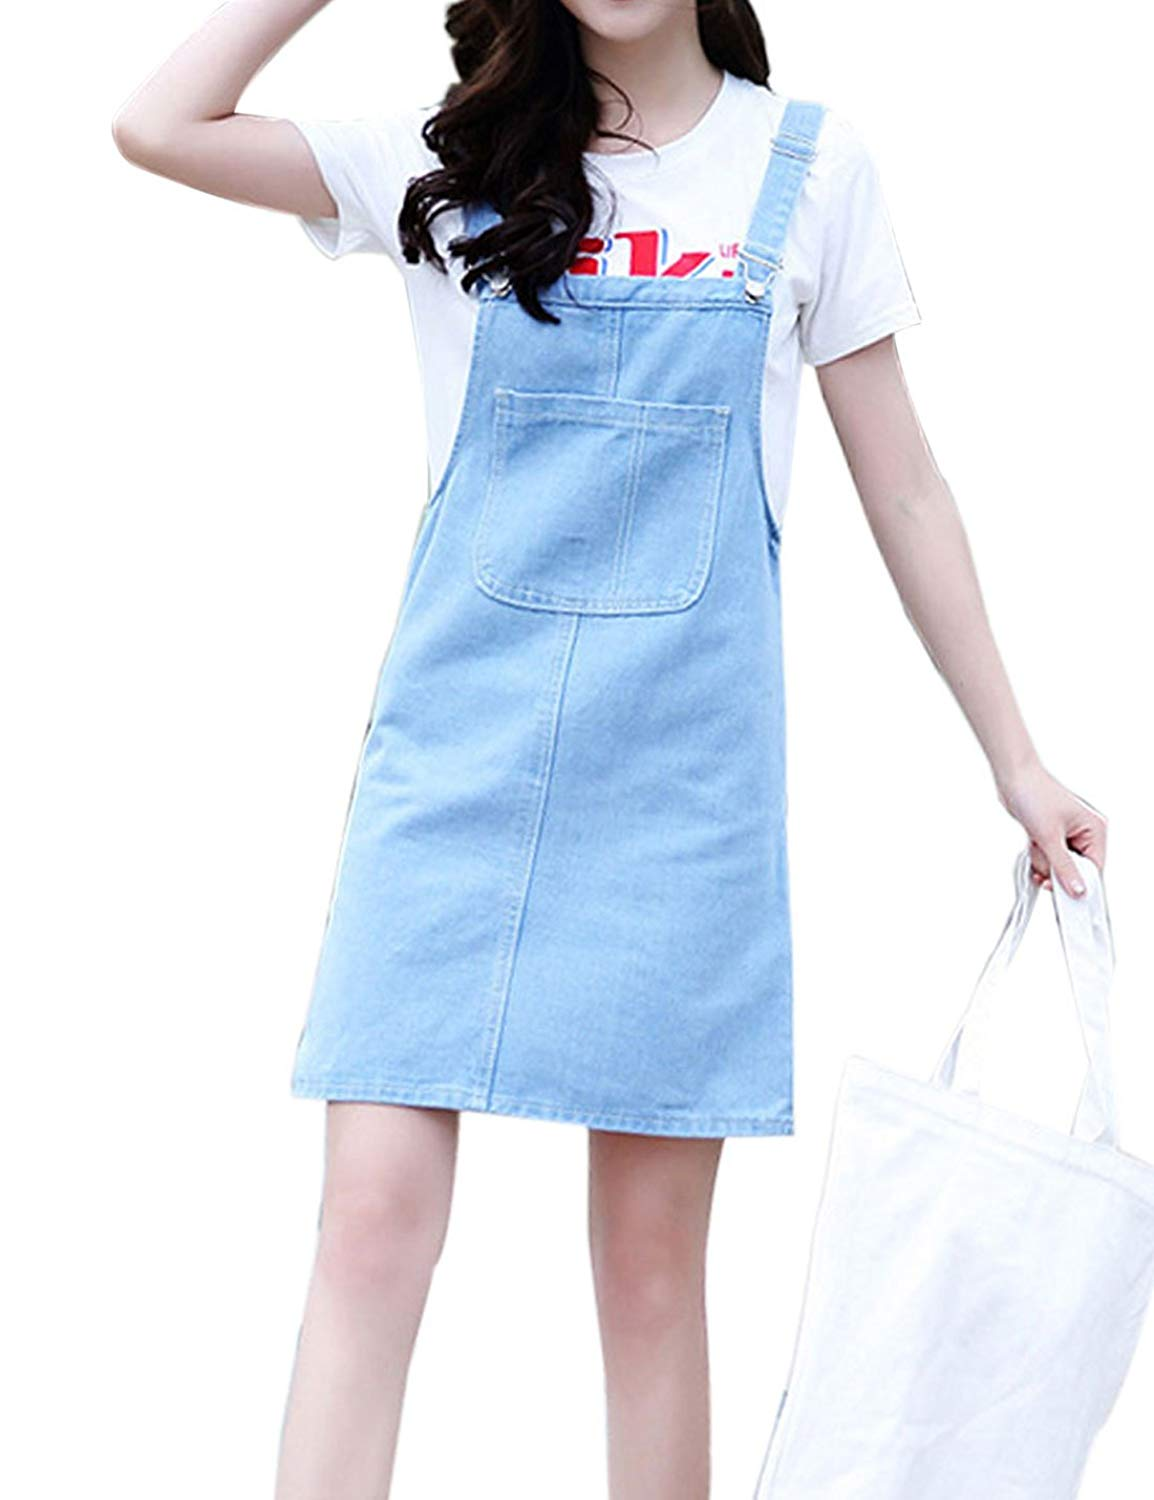 0b91dc04c21 Get Quotations · Yeokou Women s Casual A-line Mid Long Denim Jean Suspander Overall  Dress Skirt